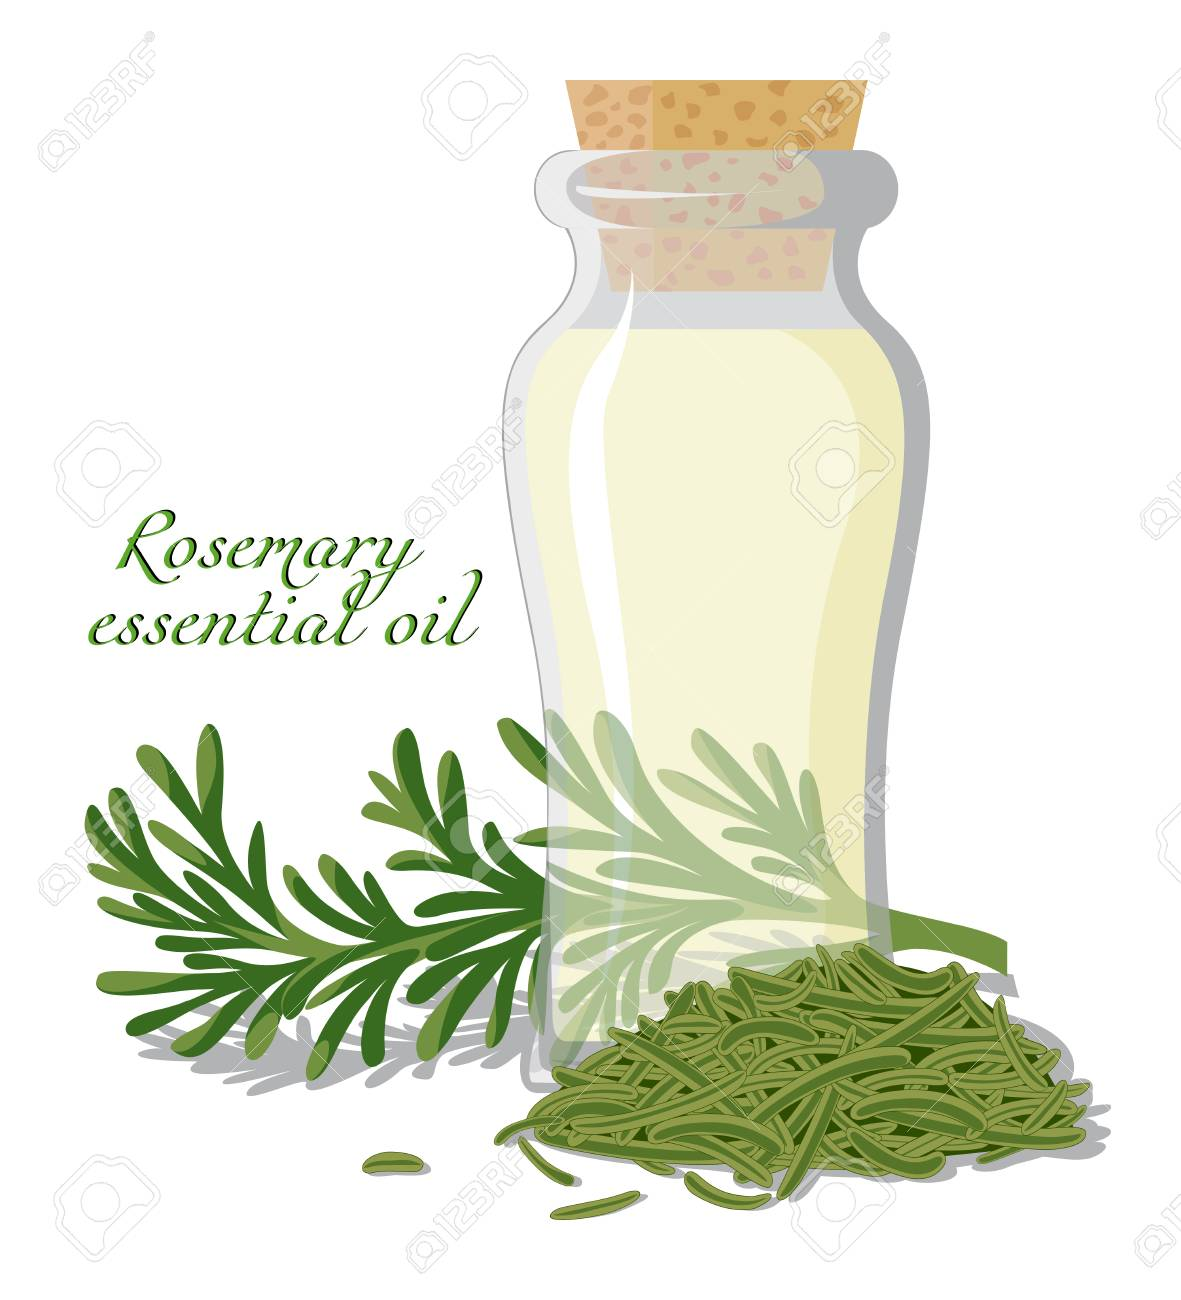 A bottle of essential oil, shown between a fresh sprig and dried rosemary leaves - 109685370